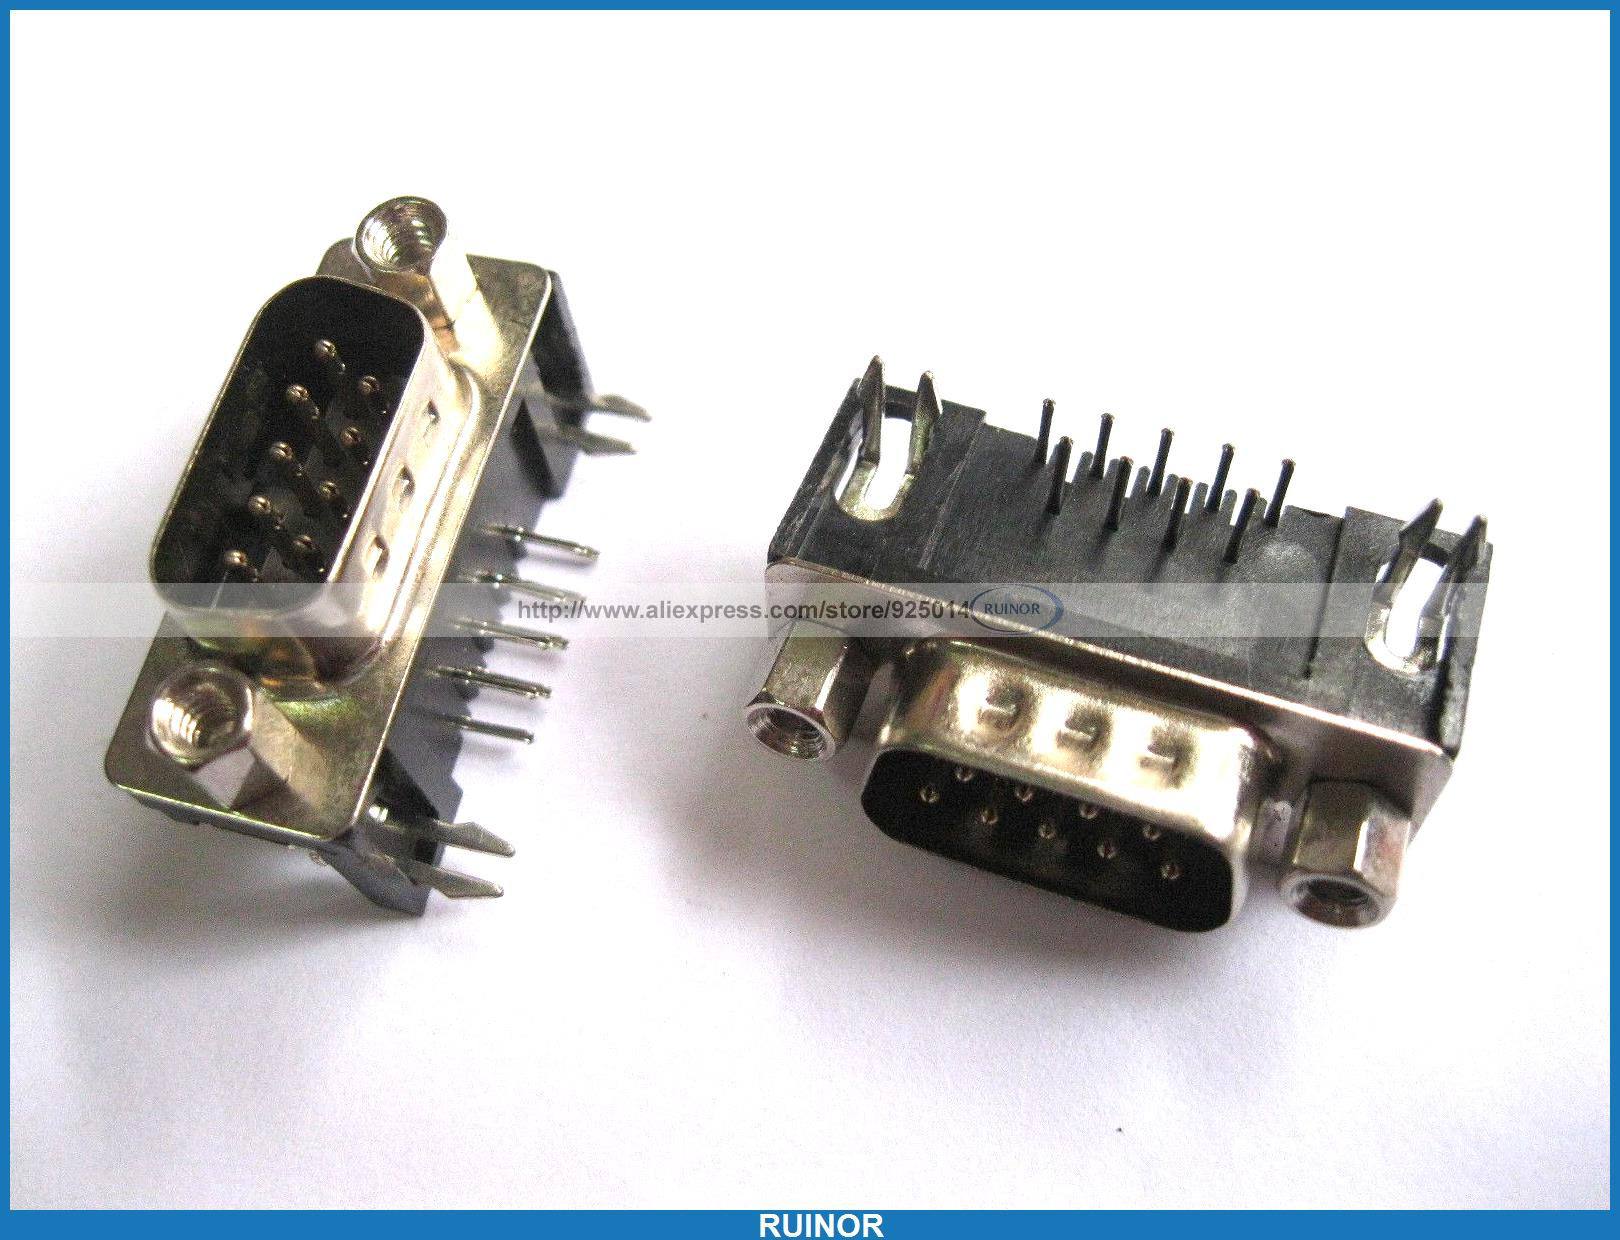 30 Pcs D Sub 9 Pin Male Connector with Right Angle 30 pcs d sub 9 pin male connector with right angle